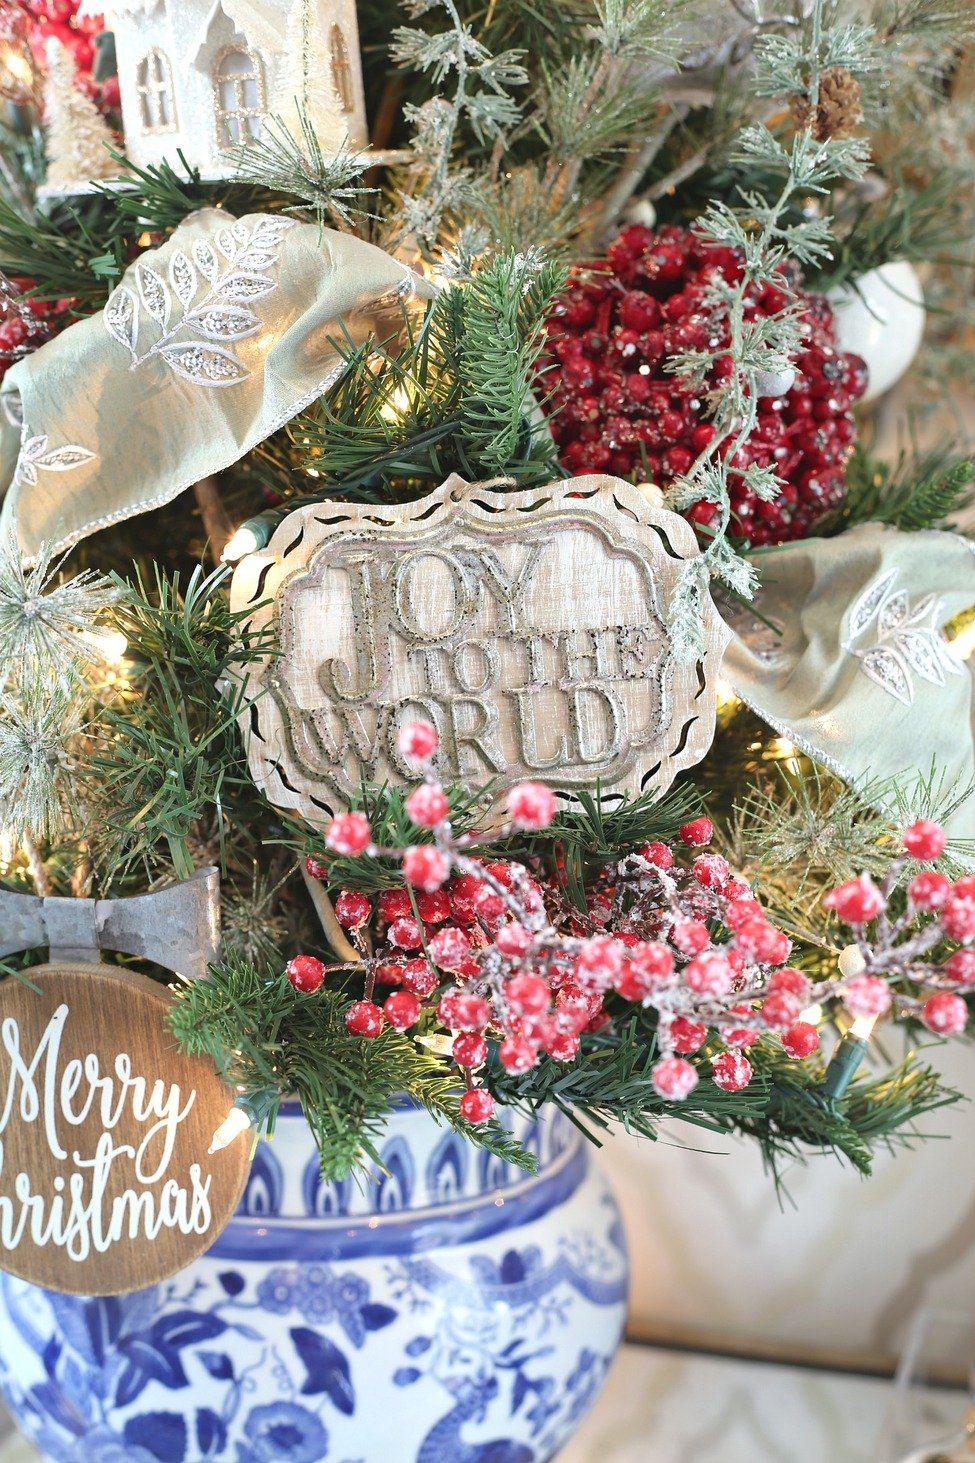 Joy to the World Wood and Metal Ornament from Kirkland's.